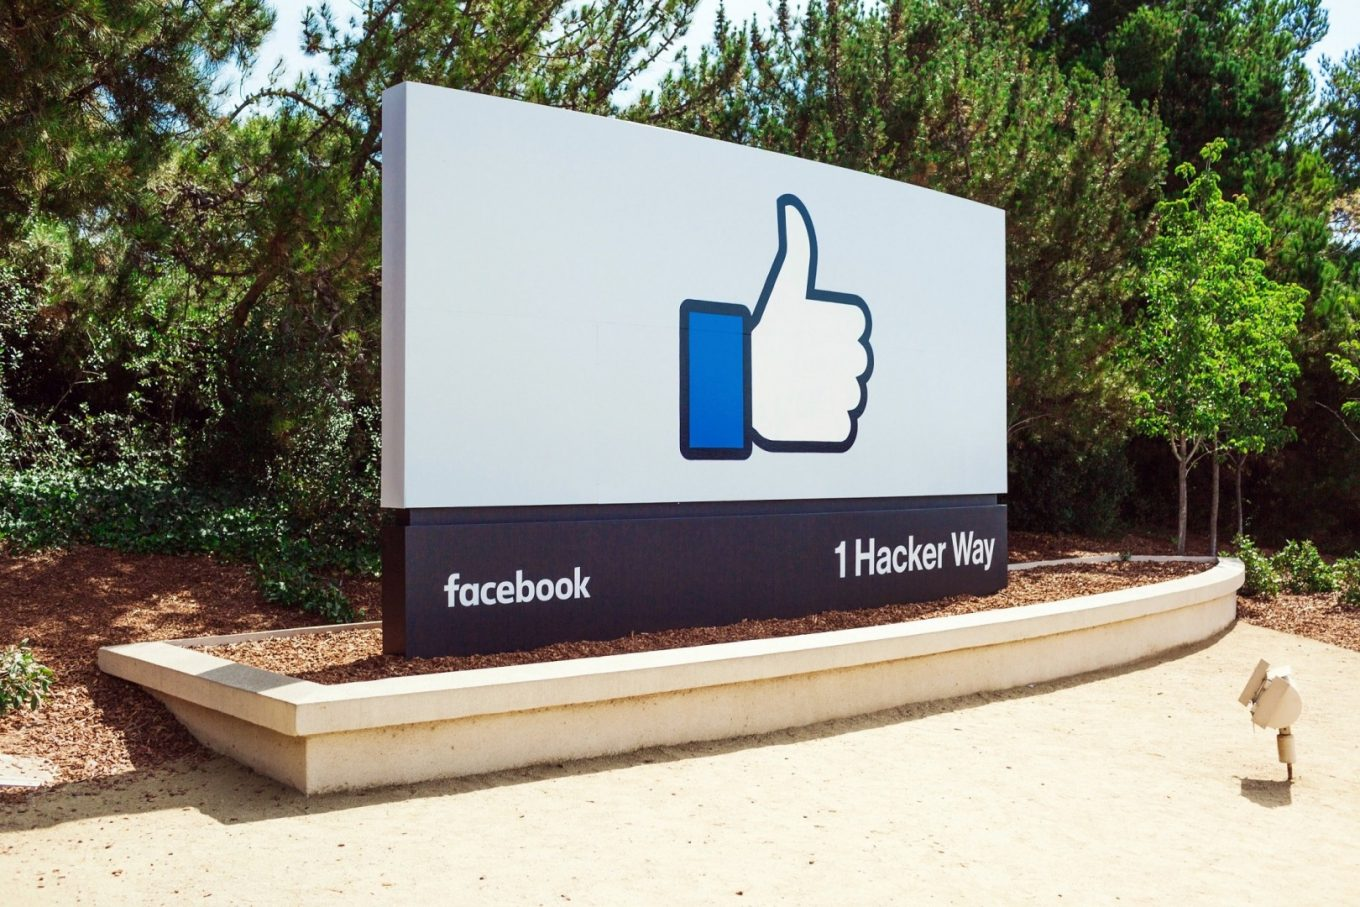 facebook like - The Silicon Valley's Outer Face